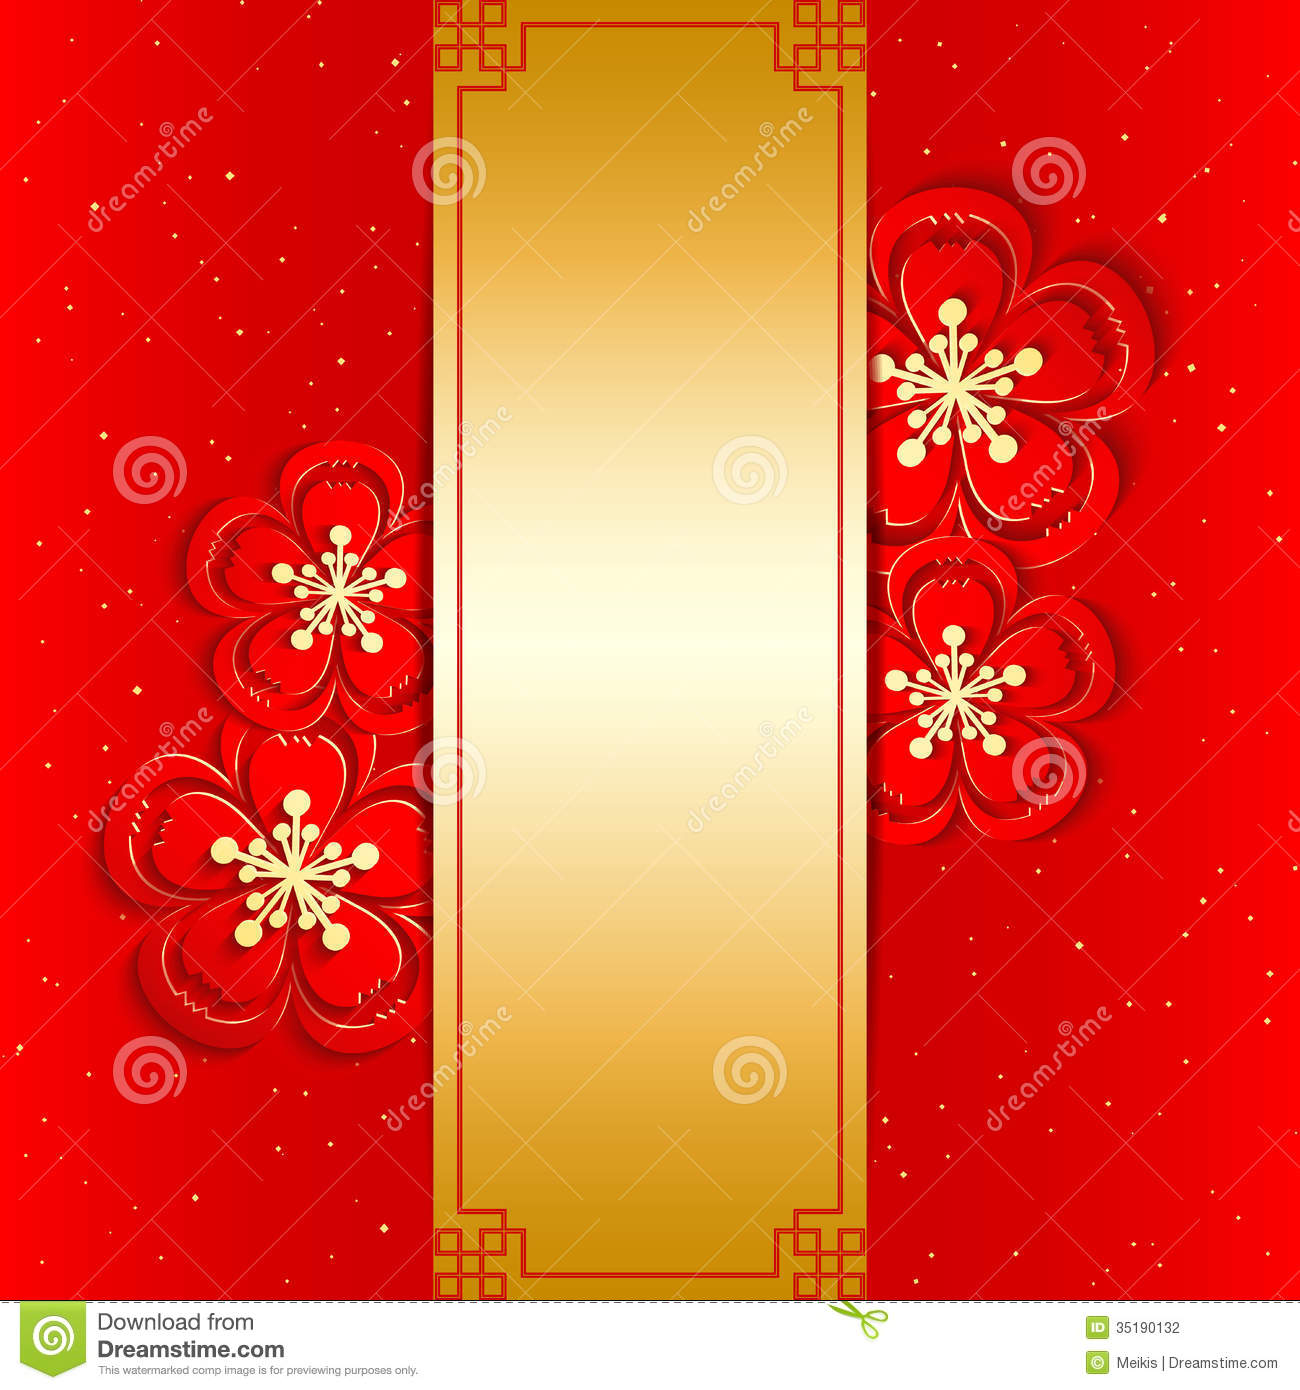 Chinese New Year Greeting Card Stock Vector Illustration Of Golden